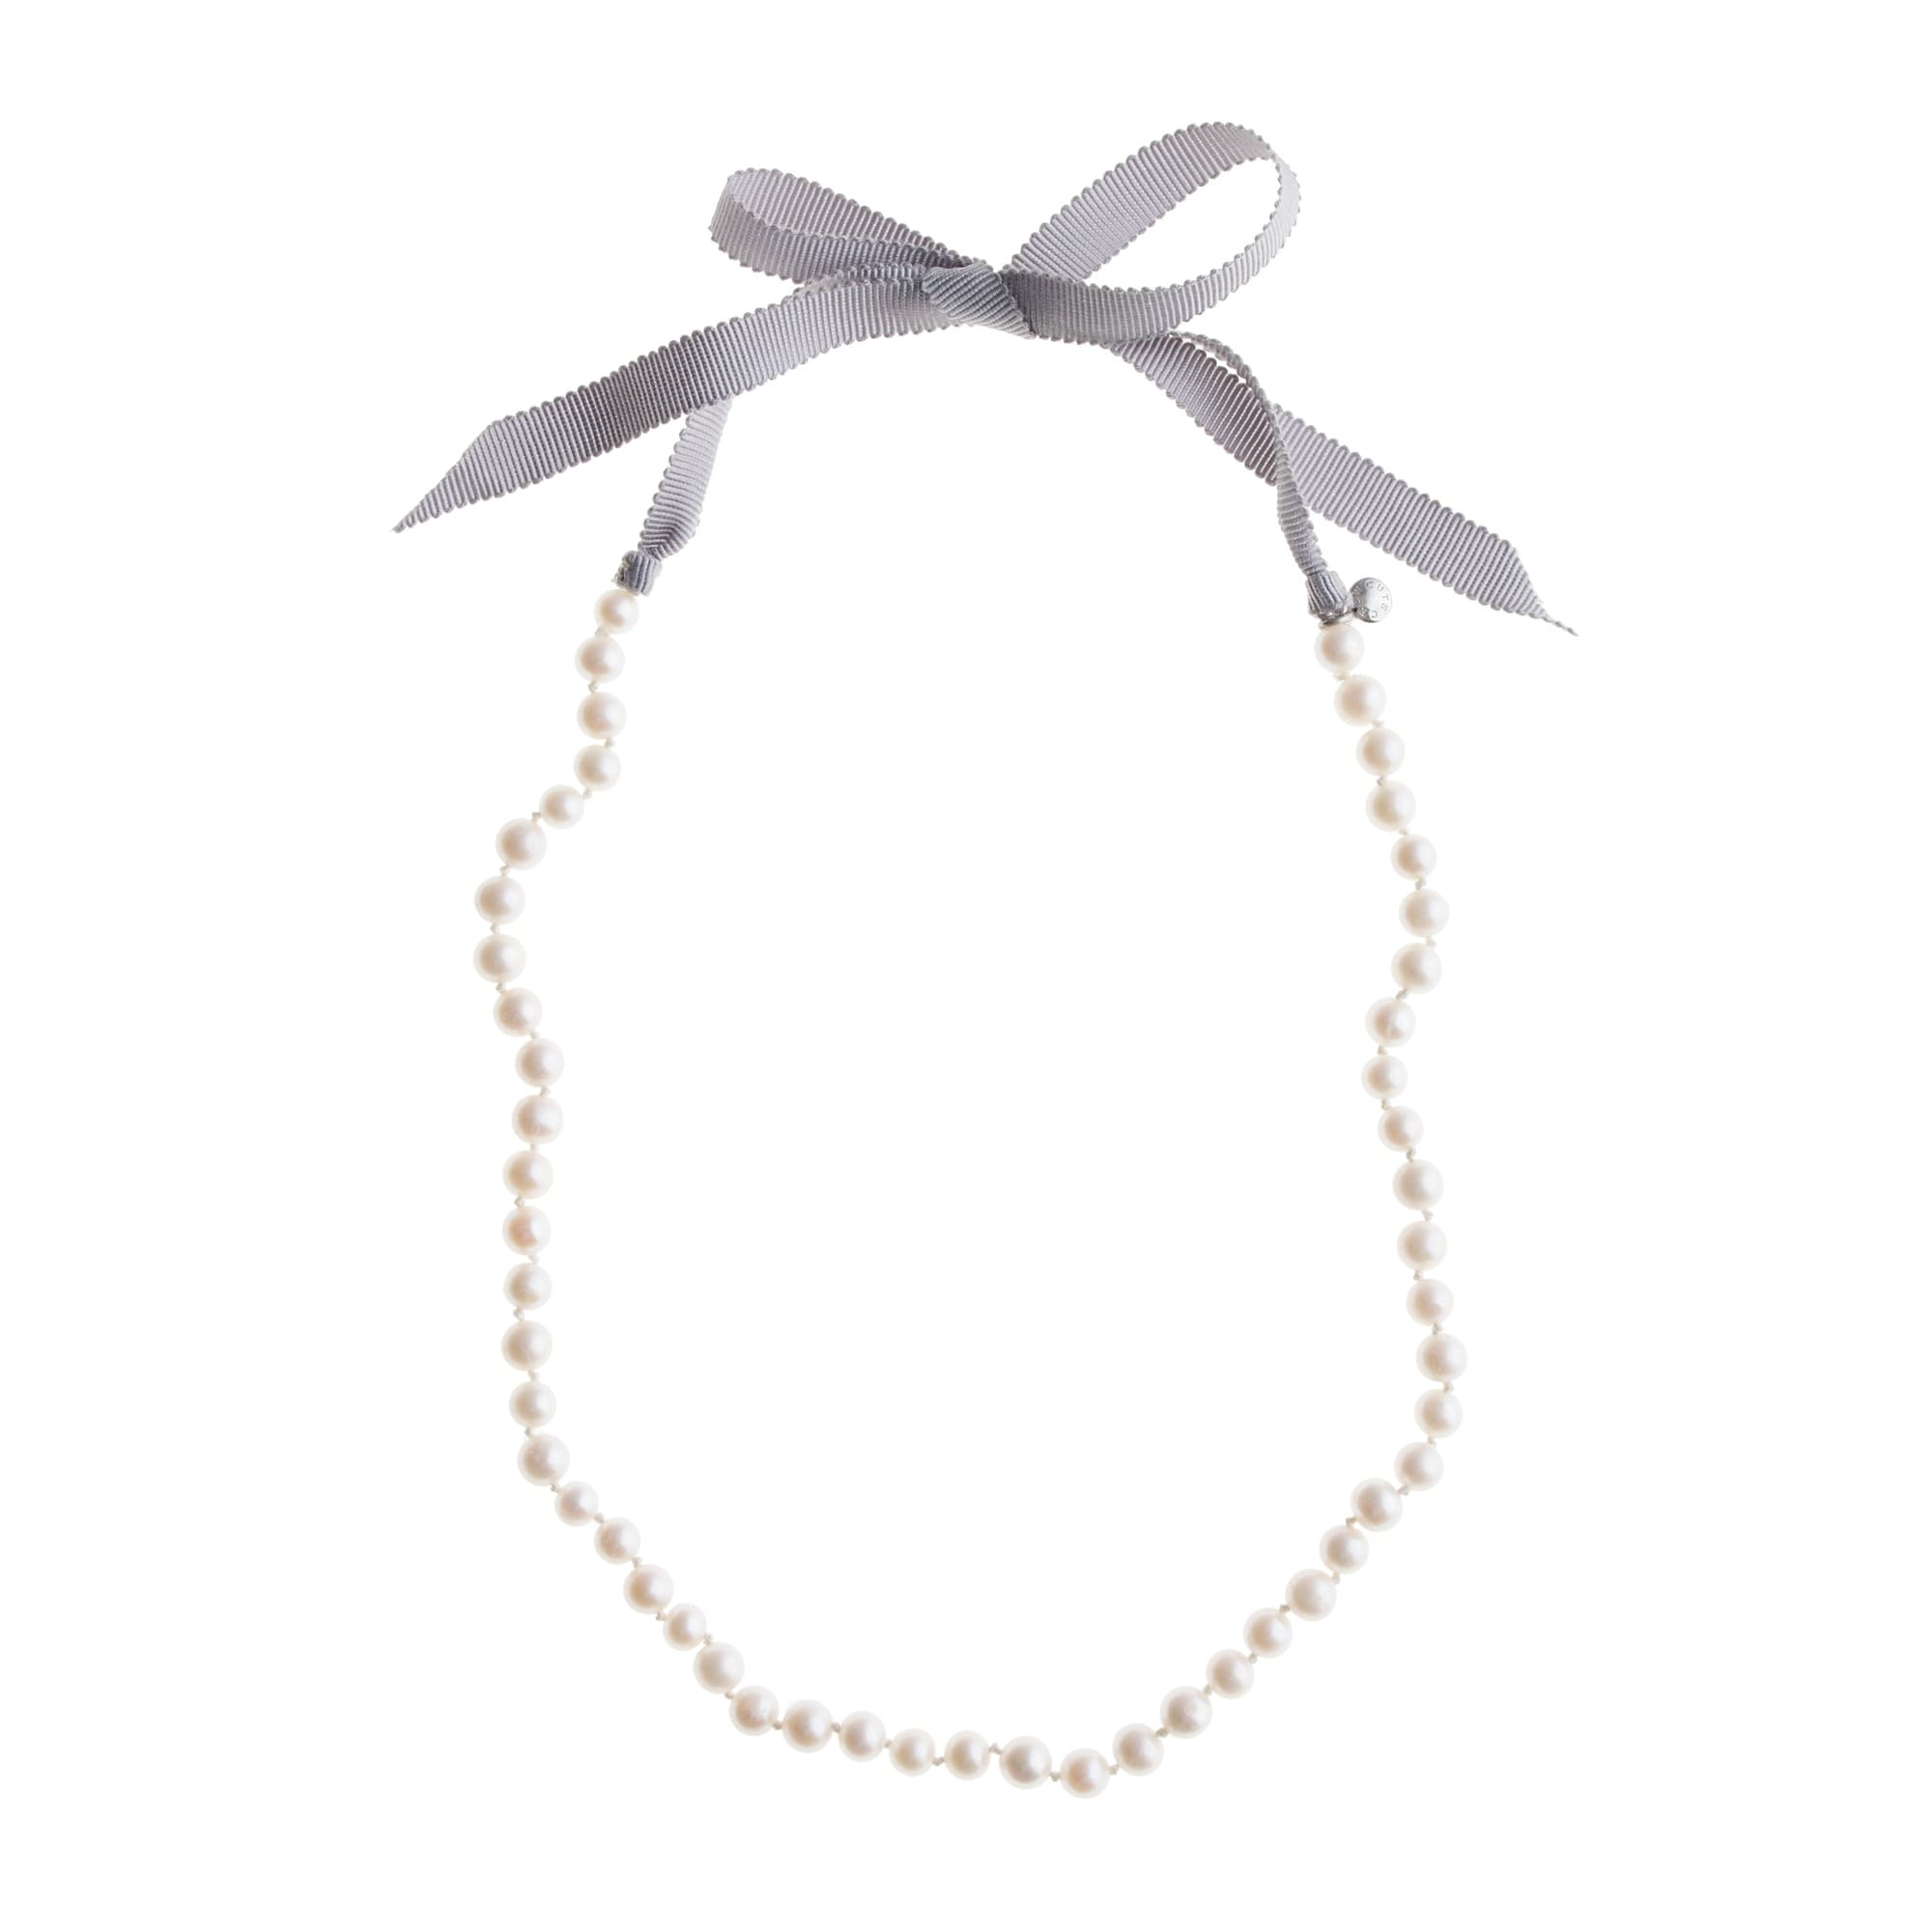 Girls' ribbon-tied long pearl necklace girl jewelry & accessories c